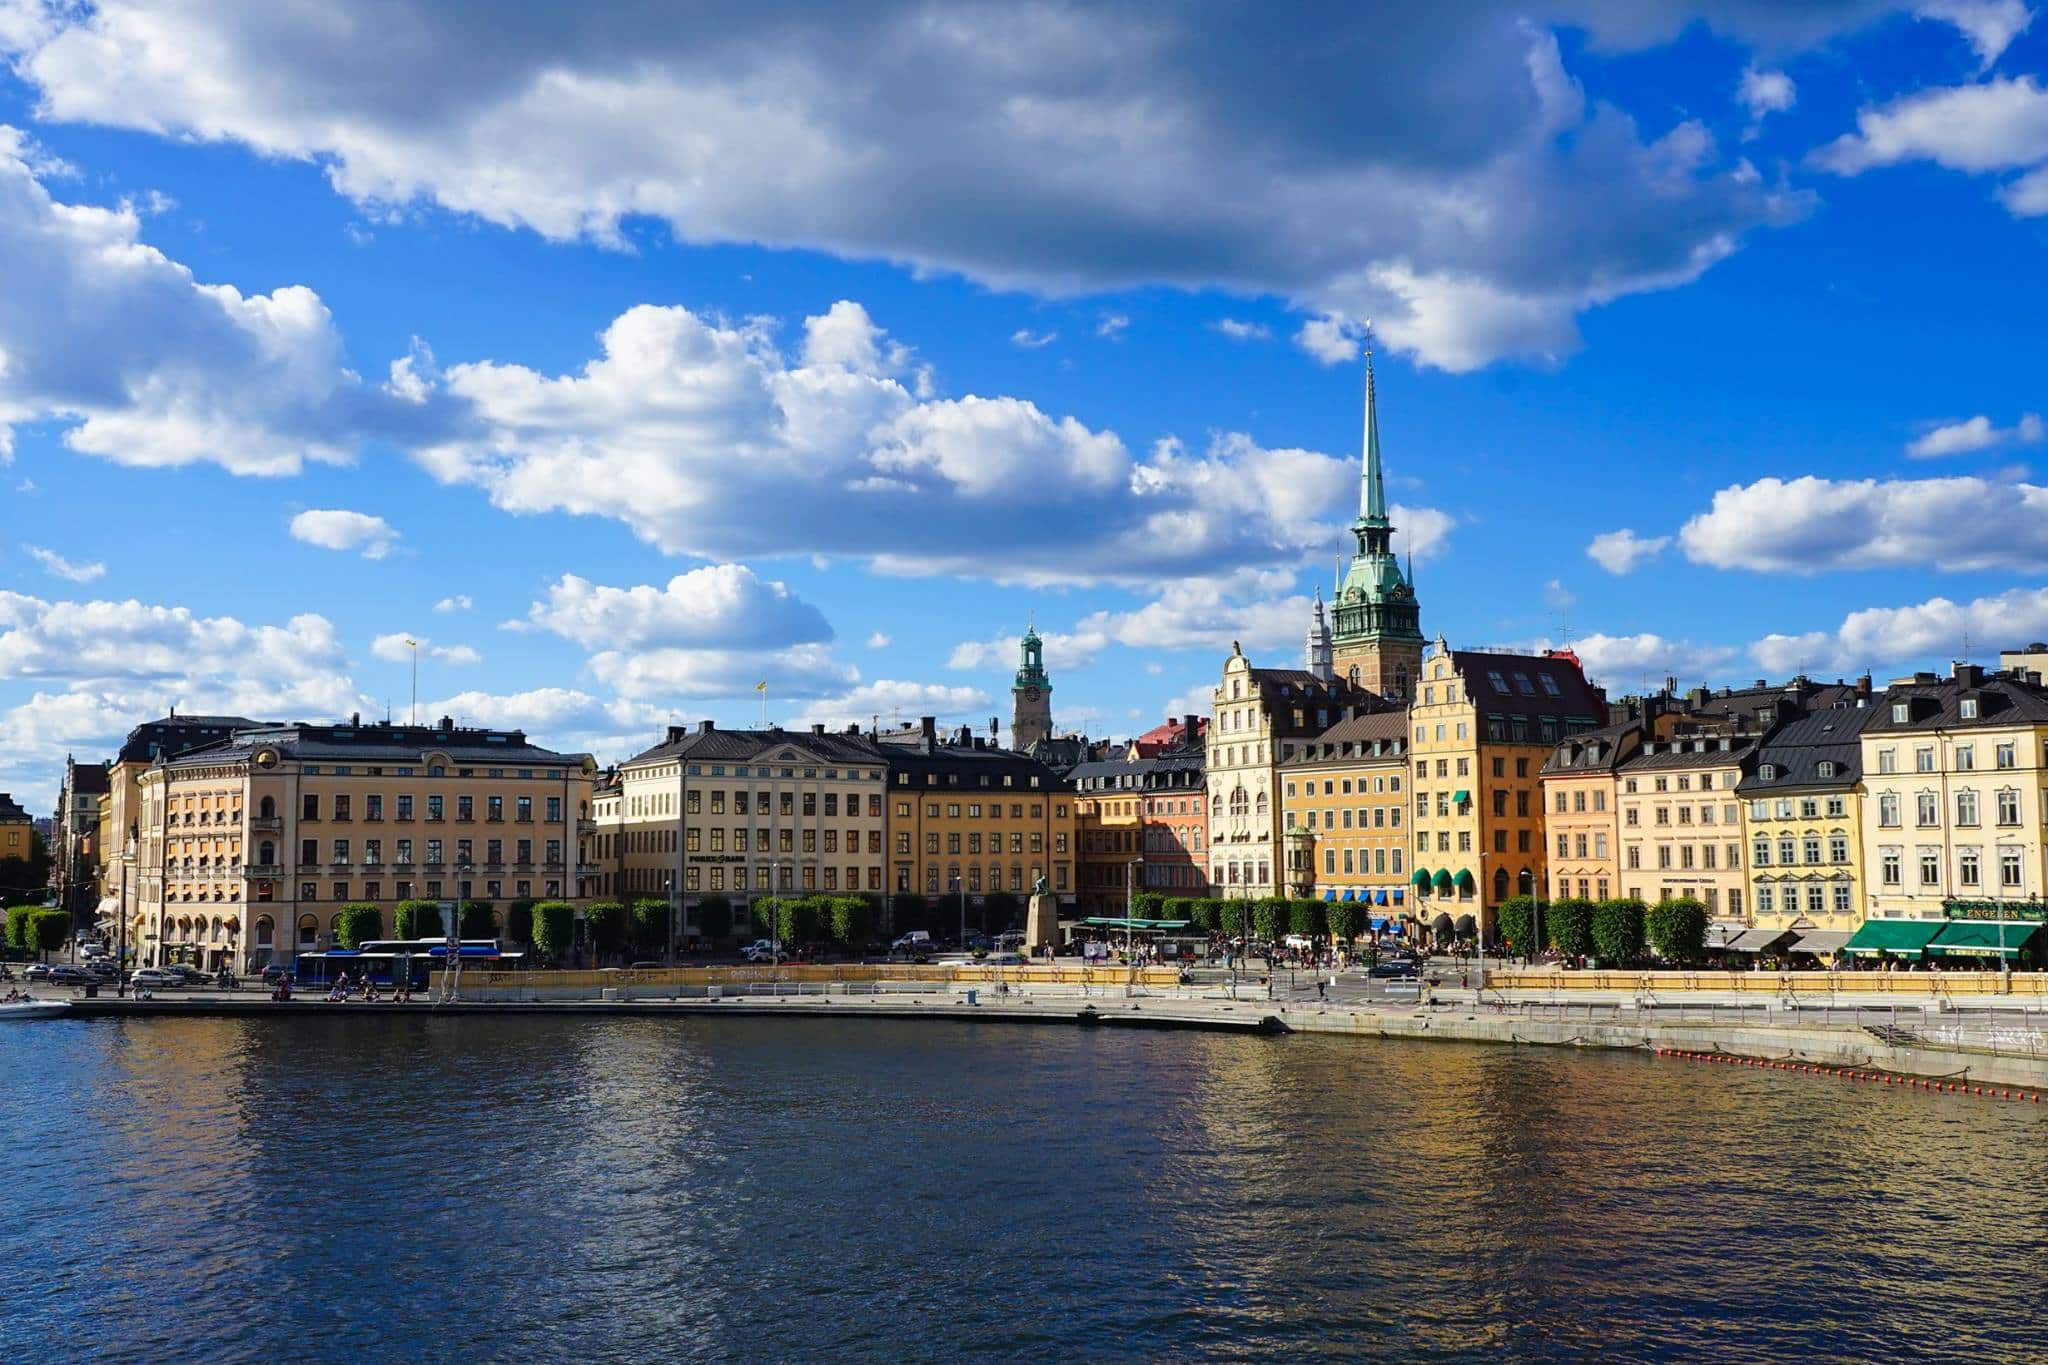 30 Fun Things To Do In Stockholm: Sweden's Majestic Capital City! 🇸🇪